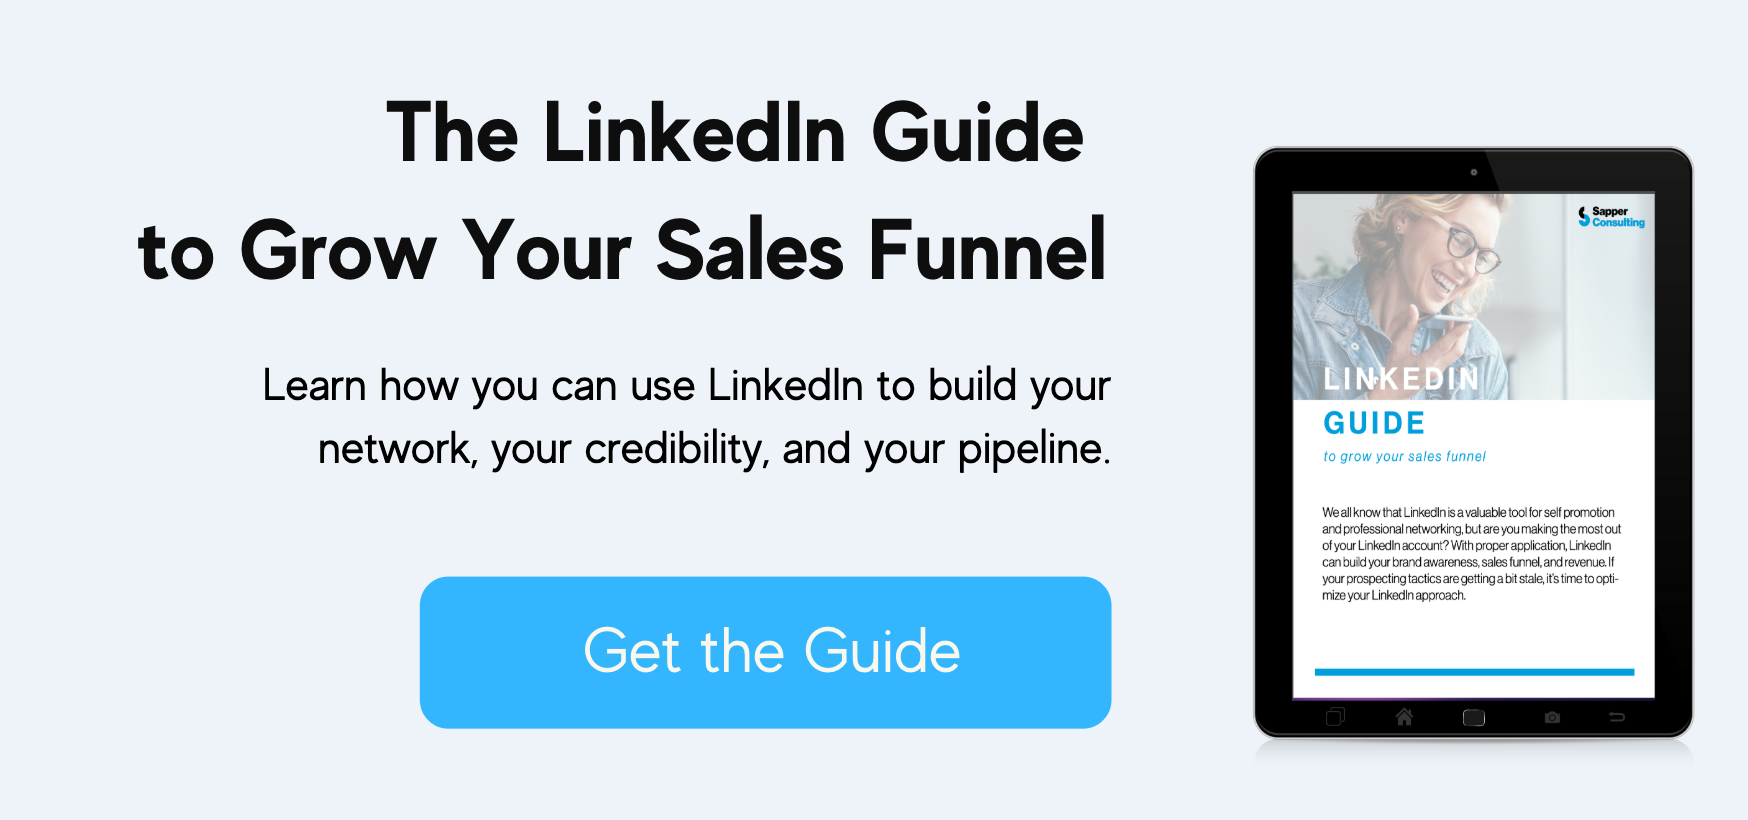 The LinkedIn Guide to Grow Your Sales Funnel